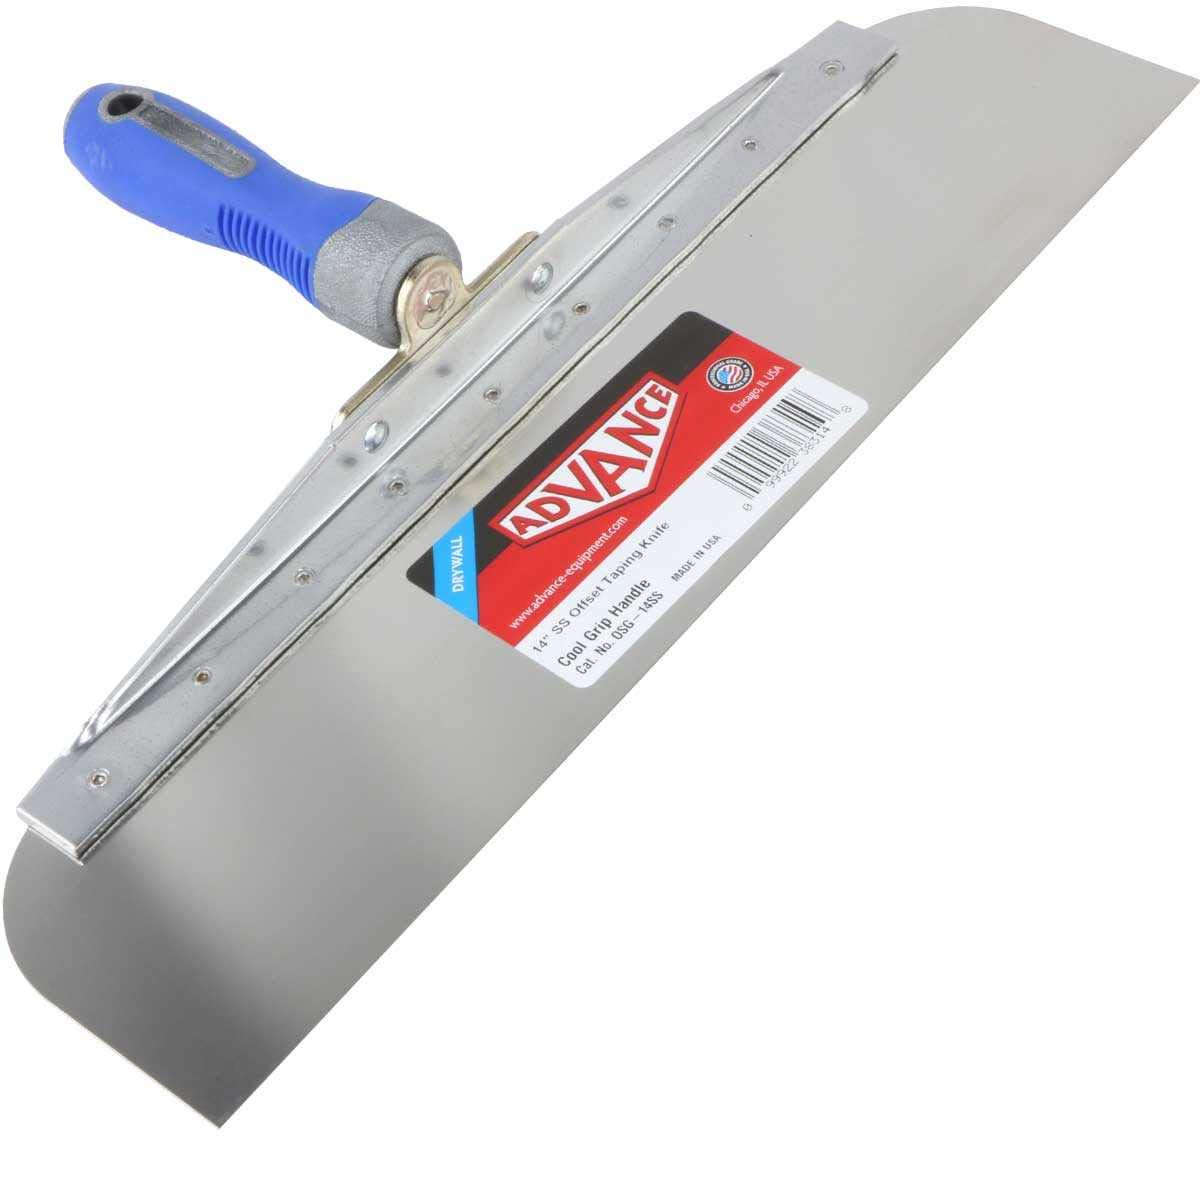 Advance Offset Taping Knife - 14'' Stainless Steel with Soft Grip Handle by Advance